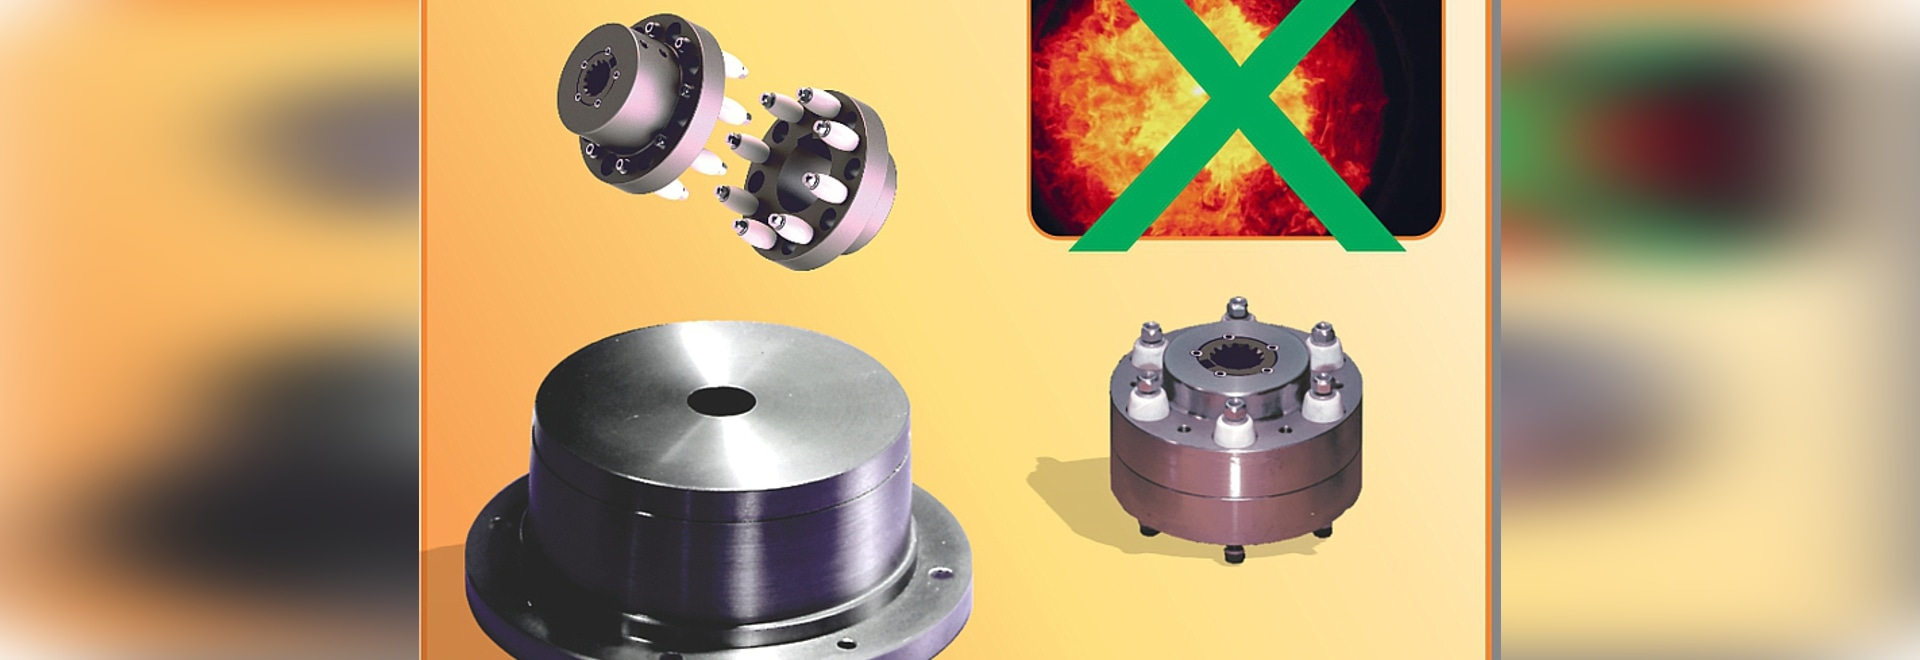 ATEX couplings and bellhousings